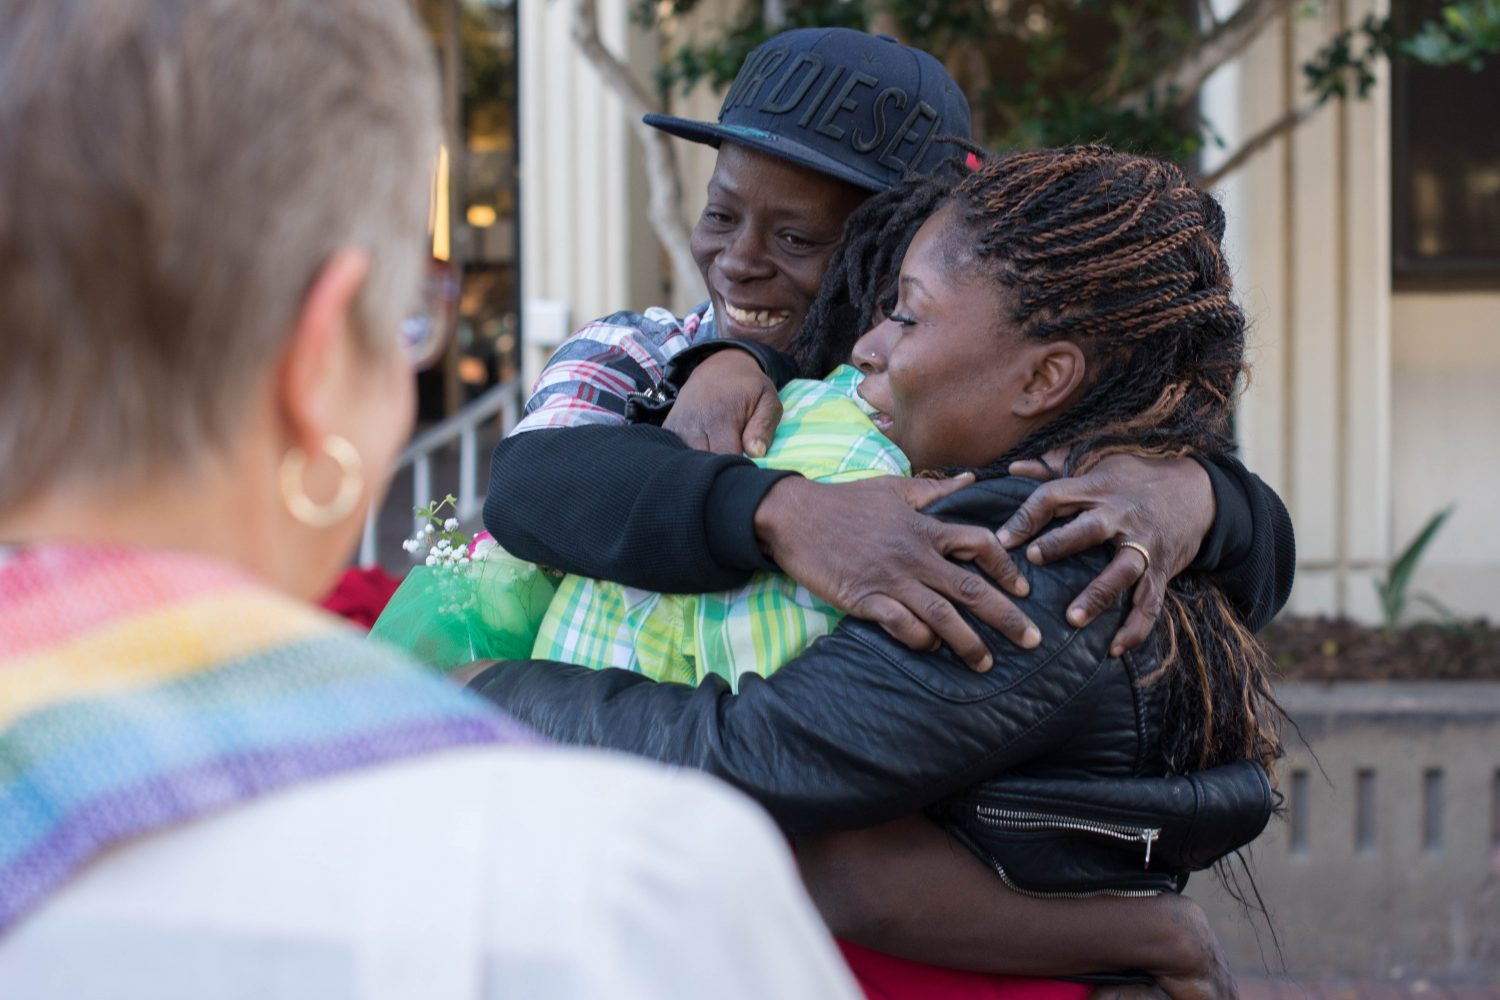 Gainesville residents Debra White (left) and LaKindra Ellis-White (right) embrace Quintyra White (middle) after Quintyra and LaKindra successfully attain their marriage license outside the Alachua County Courthouse on Tuesday, Jan. 6.